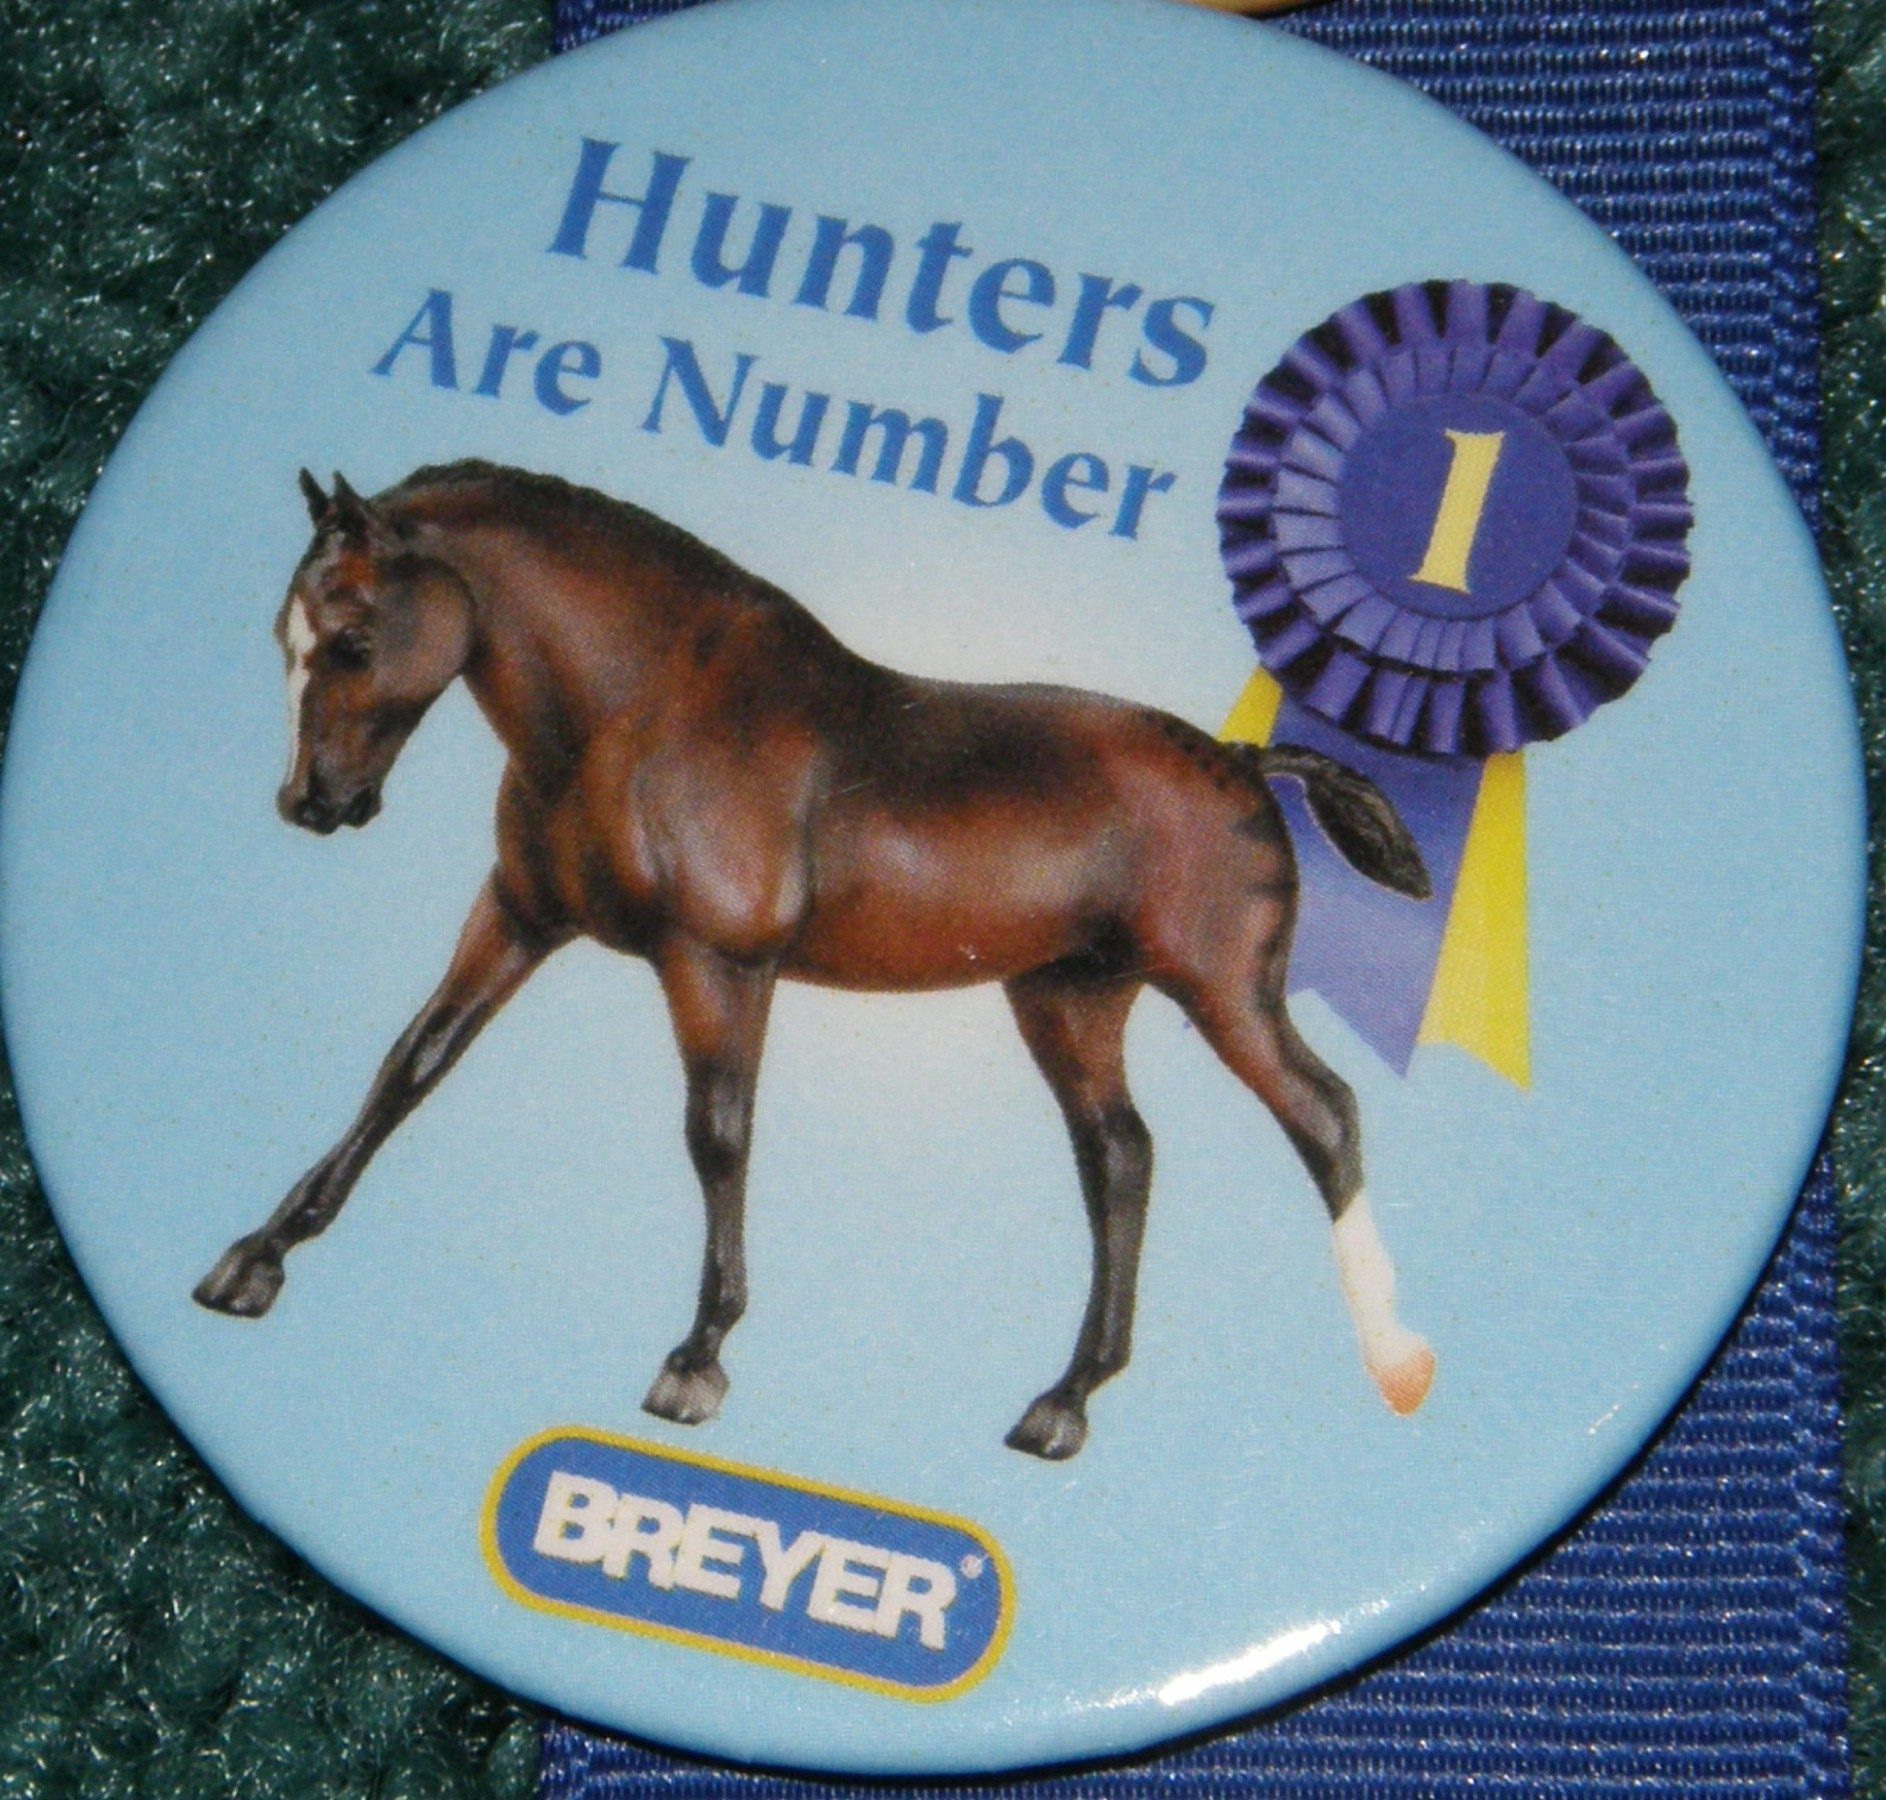 #1174 Hunter Pony CWP Welsh Pony Hunters Are #1 Horse Breyer Button Pin